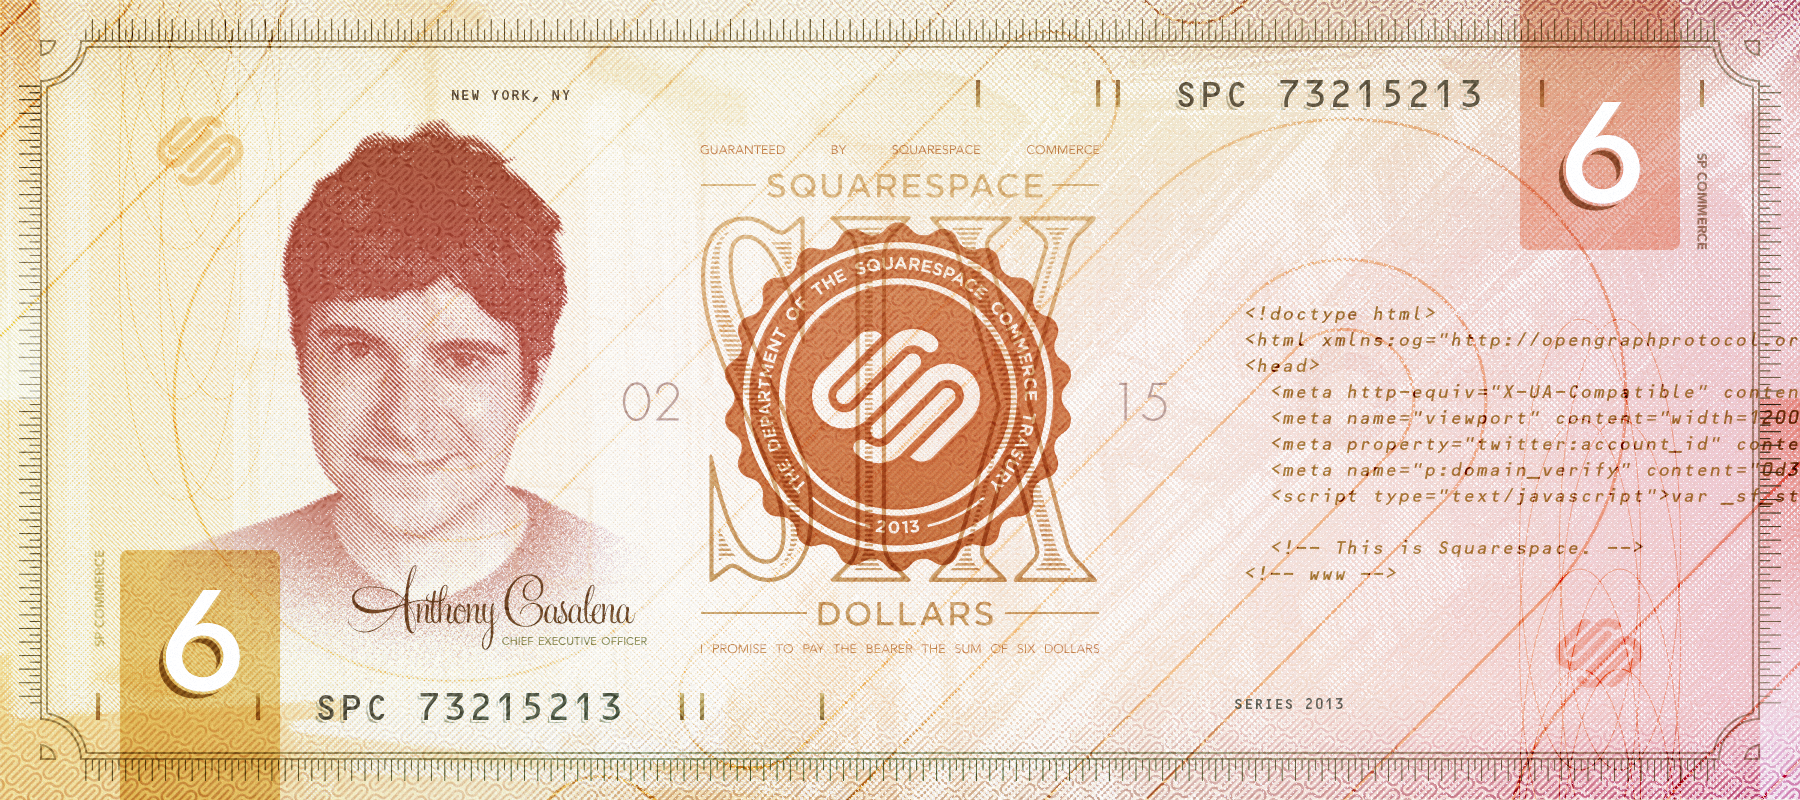 Squarespace commerce note